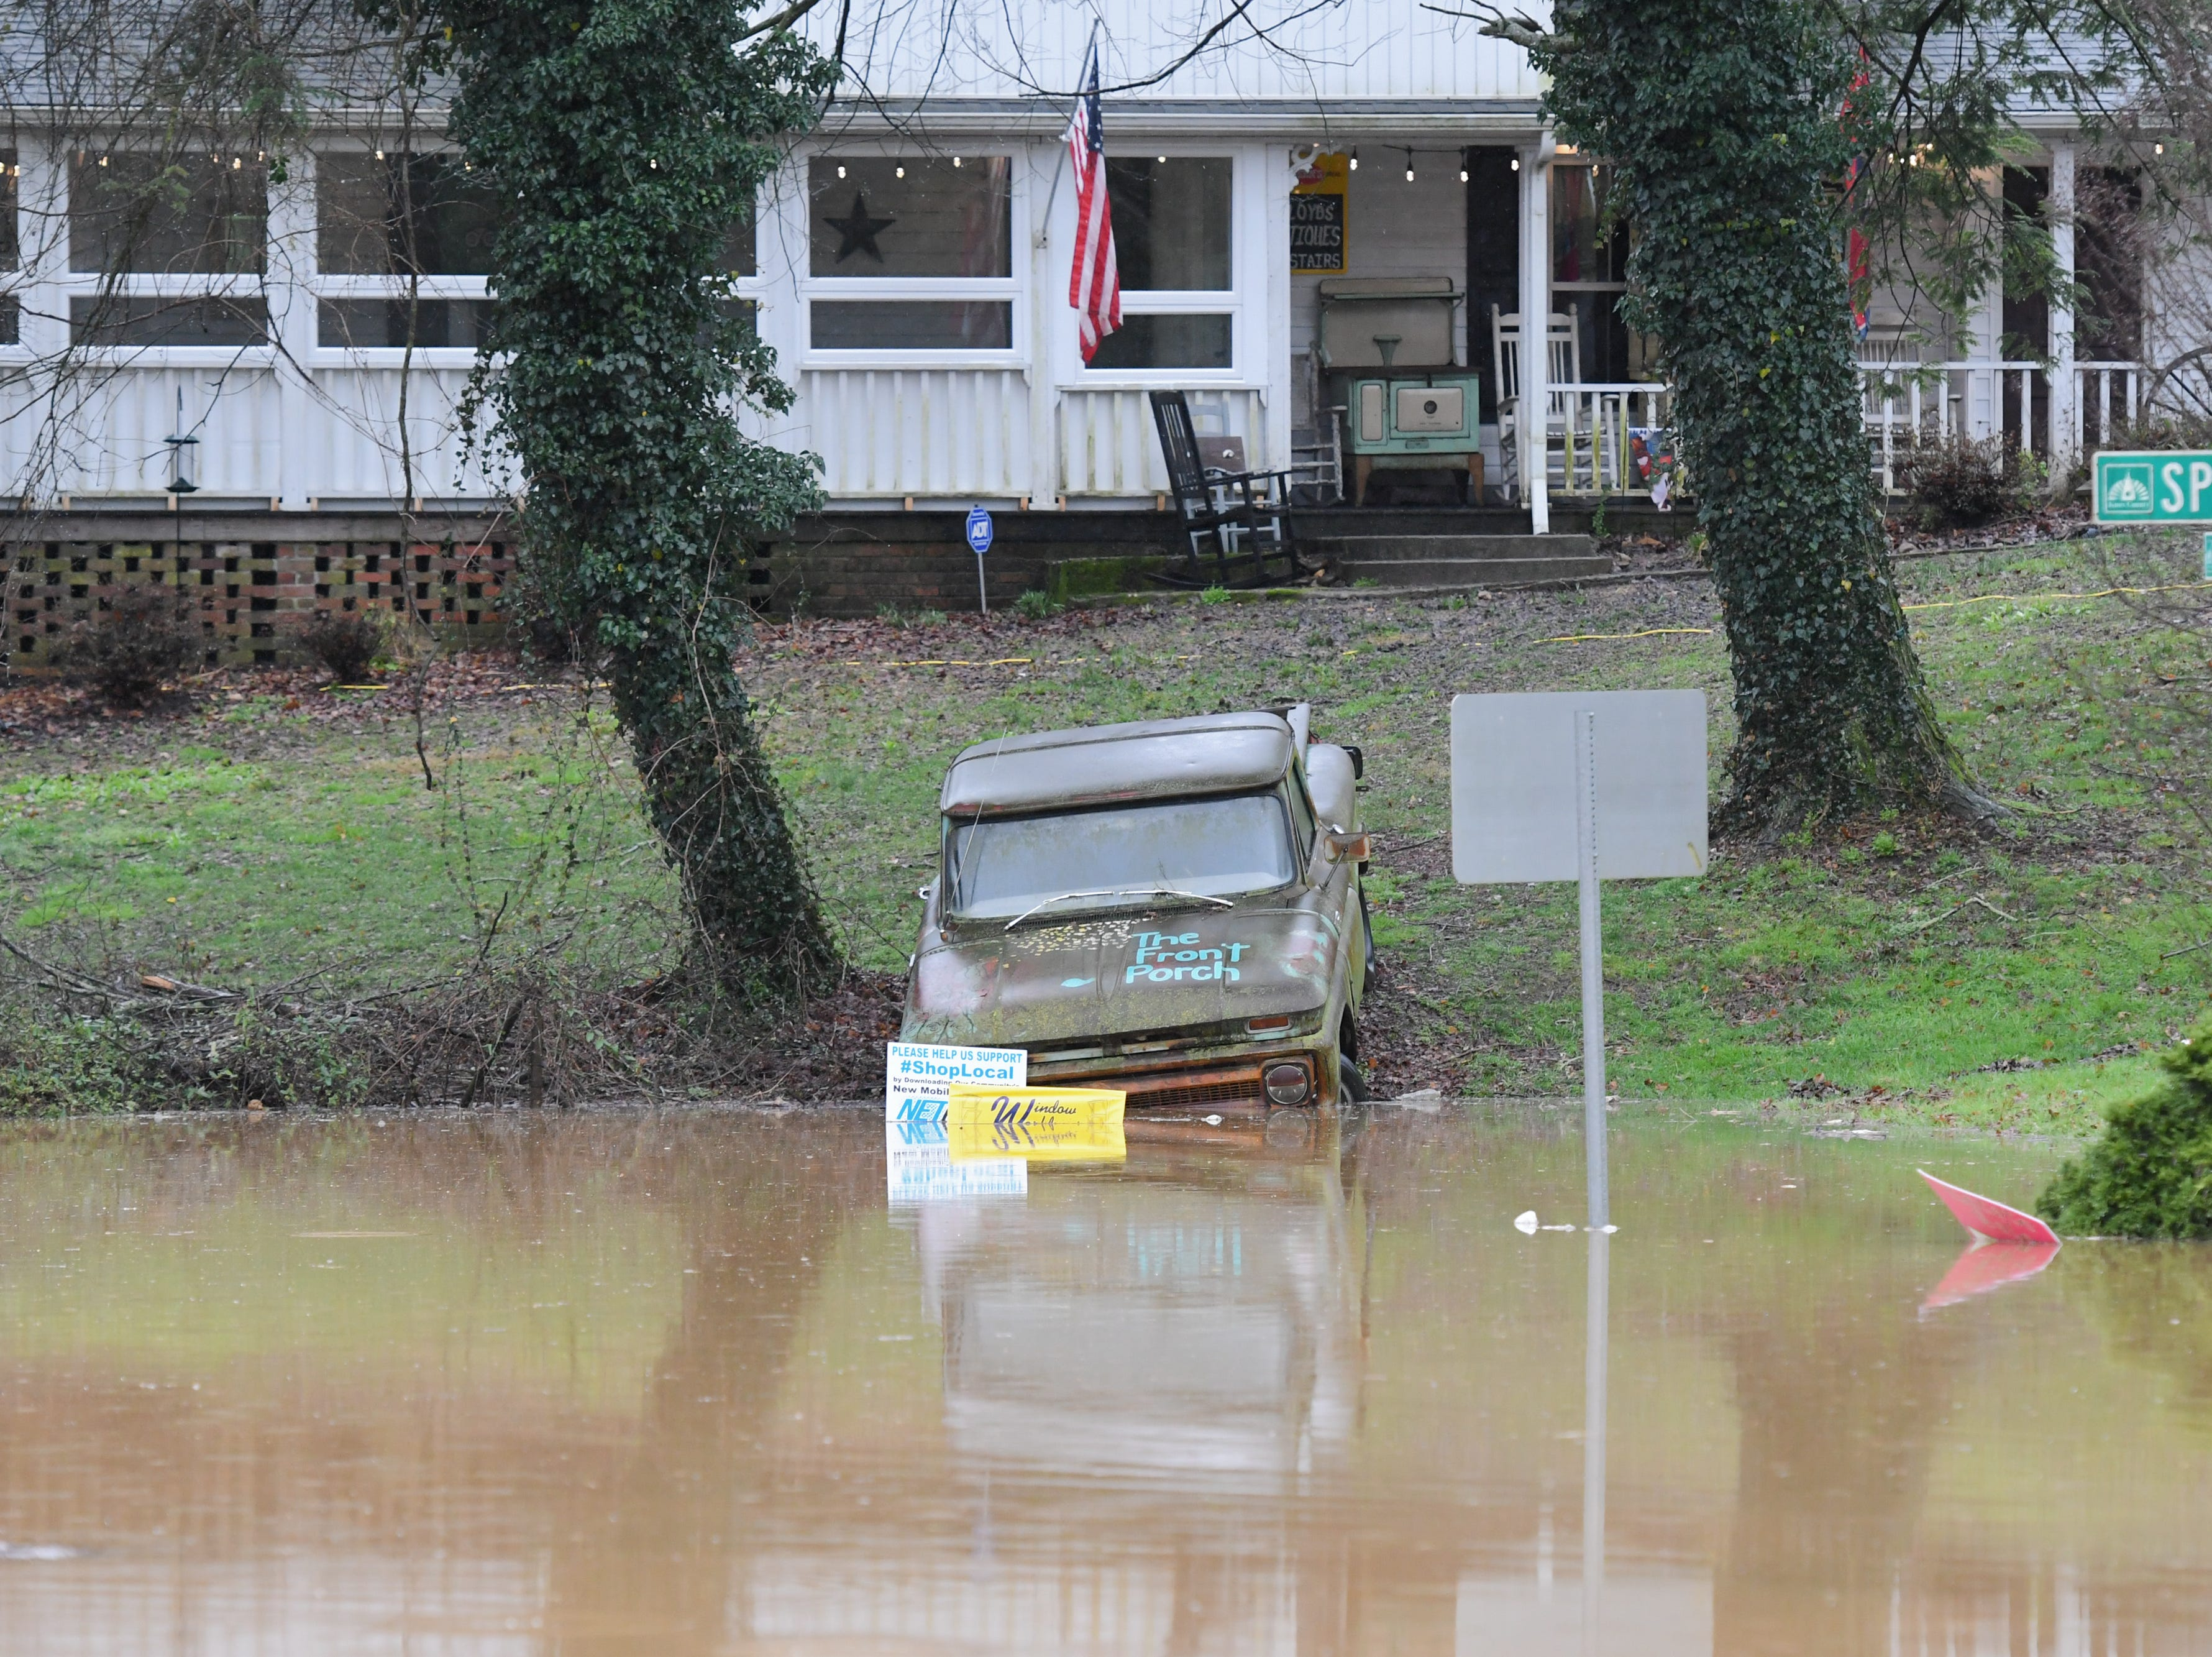 Beaver Creek overflows due to flooding in front of The Front Porch restaurant at West Emory Road and Spring Street in Powell Saturday Feb. 23, 2019. The Knoxville area could see between 2 and 3 inches of rain through the weekend.